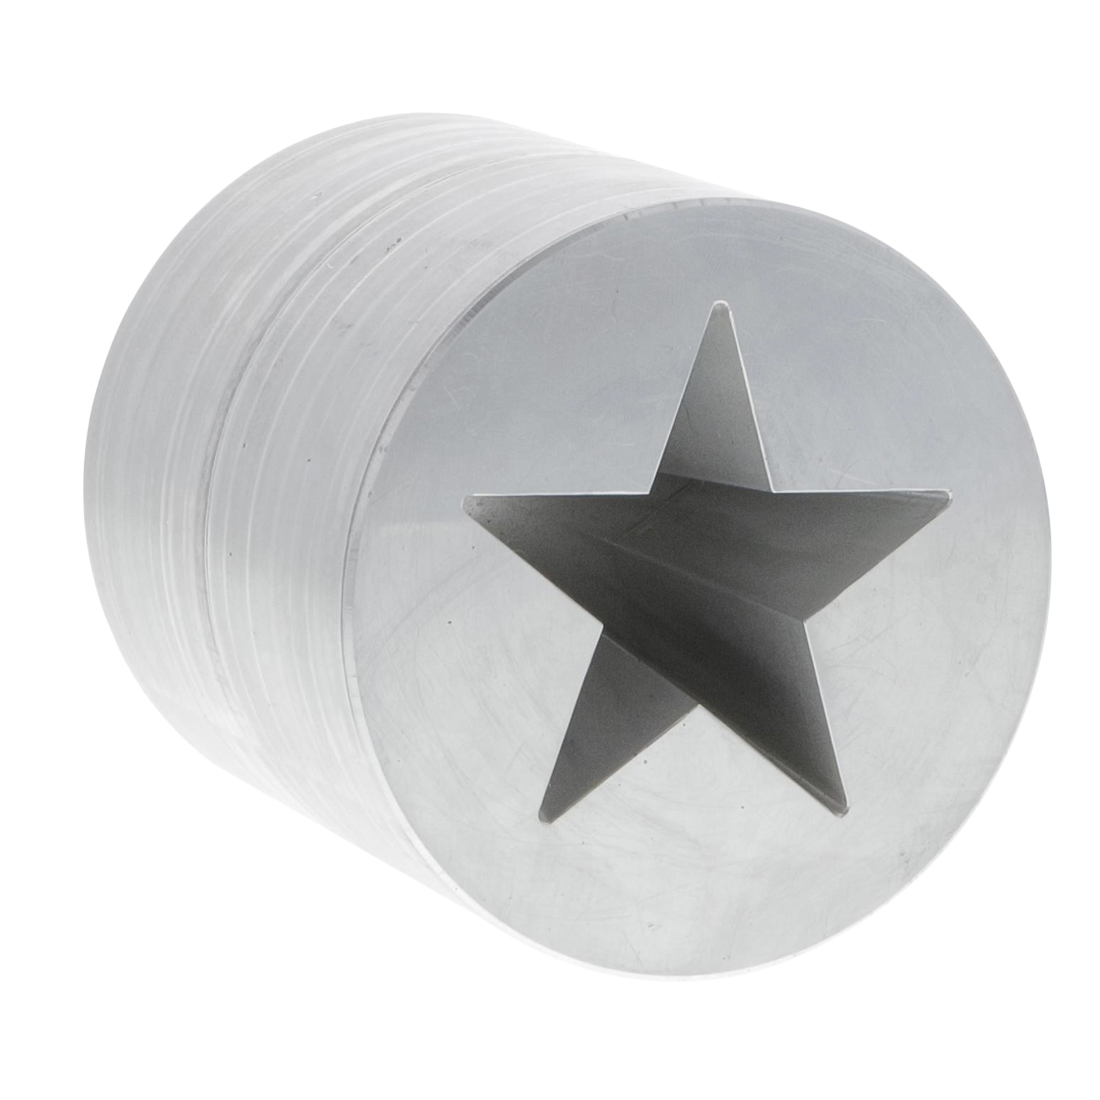 ABR Aluminium Star Optic Mold